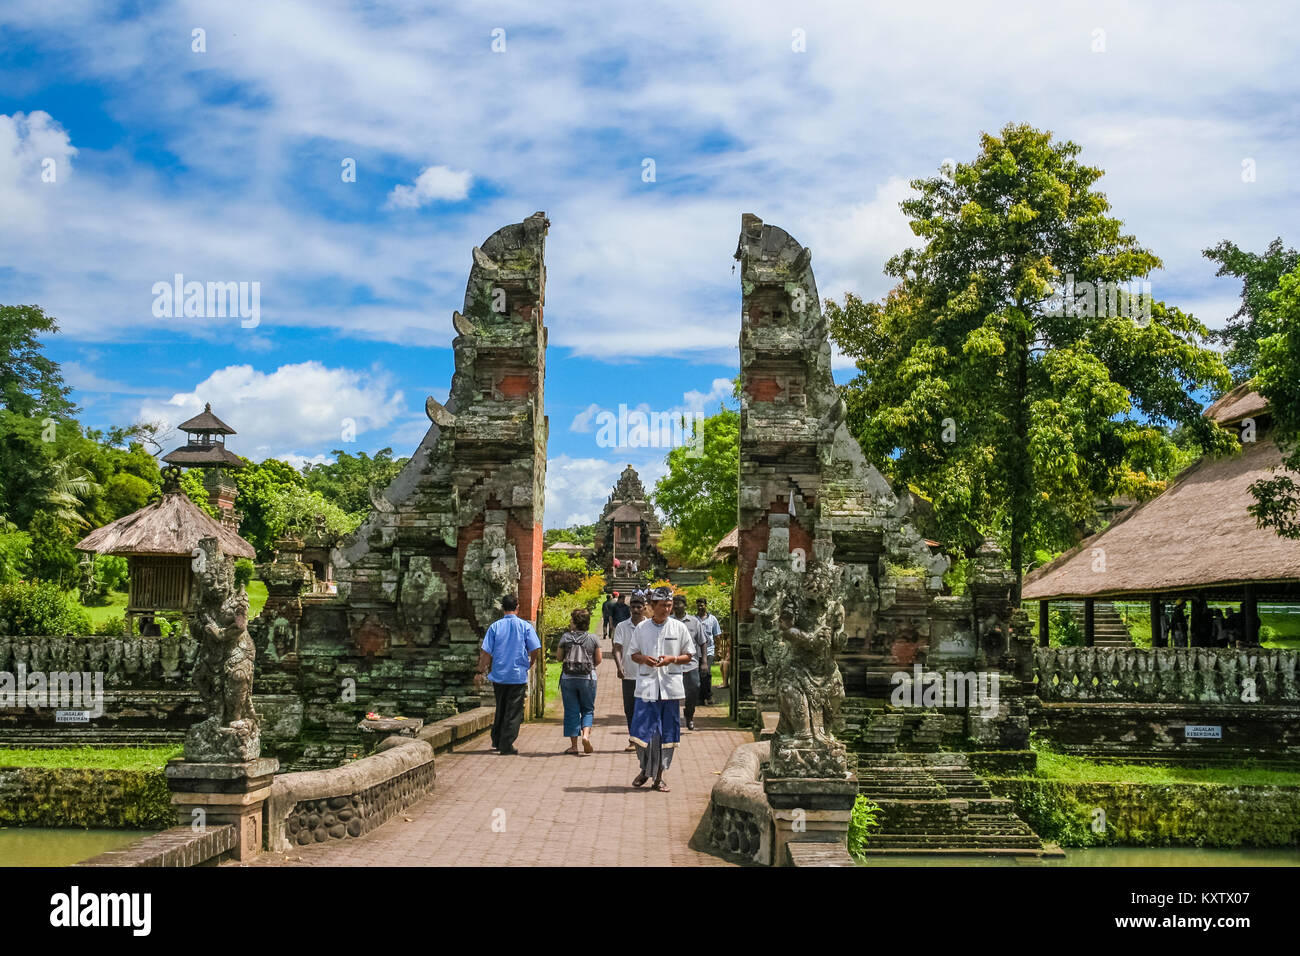 The main entrance, a split gate (candi bentar), of Pura Taman Ayun in Mengwi, Bali, Indonesia. Stock Photo